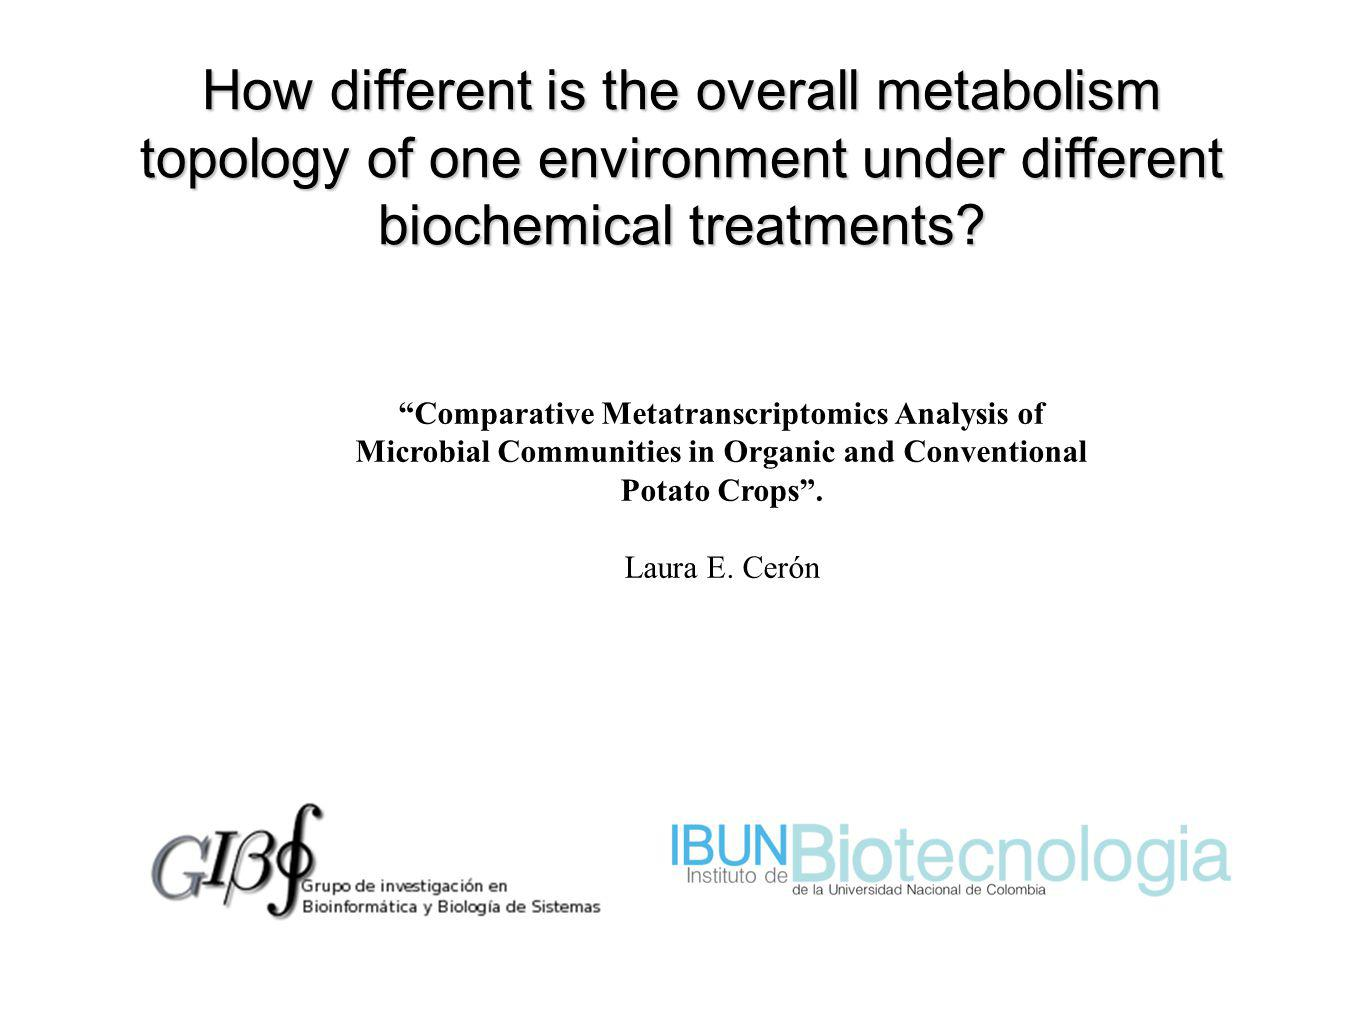 How different is the overall metabolism topology of one environment under different biochemical treatments.